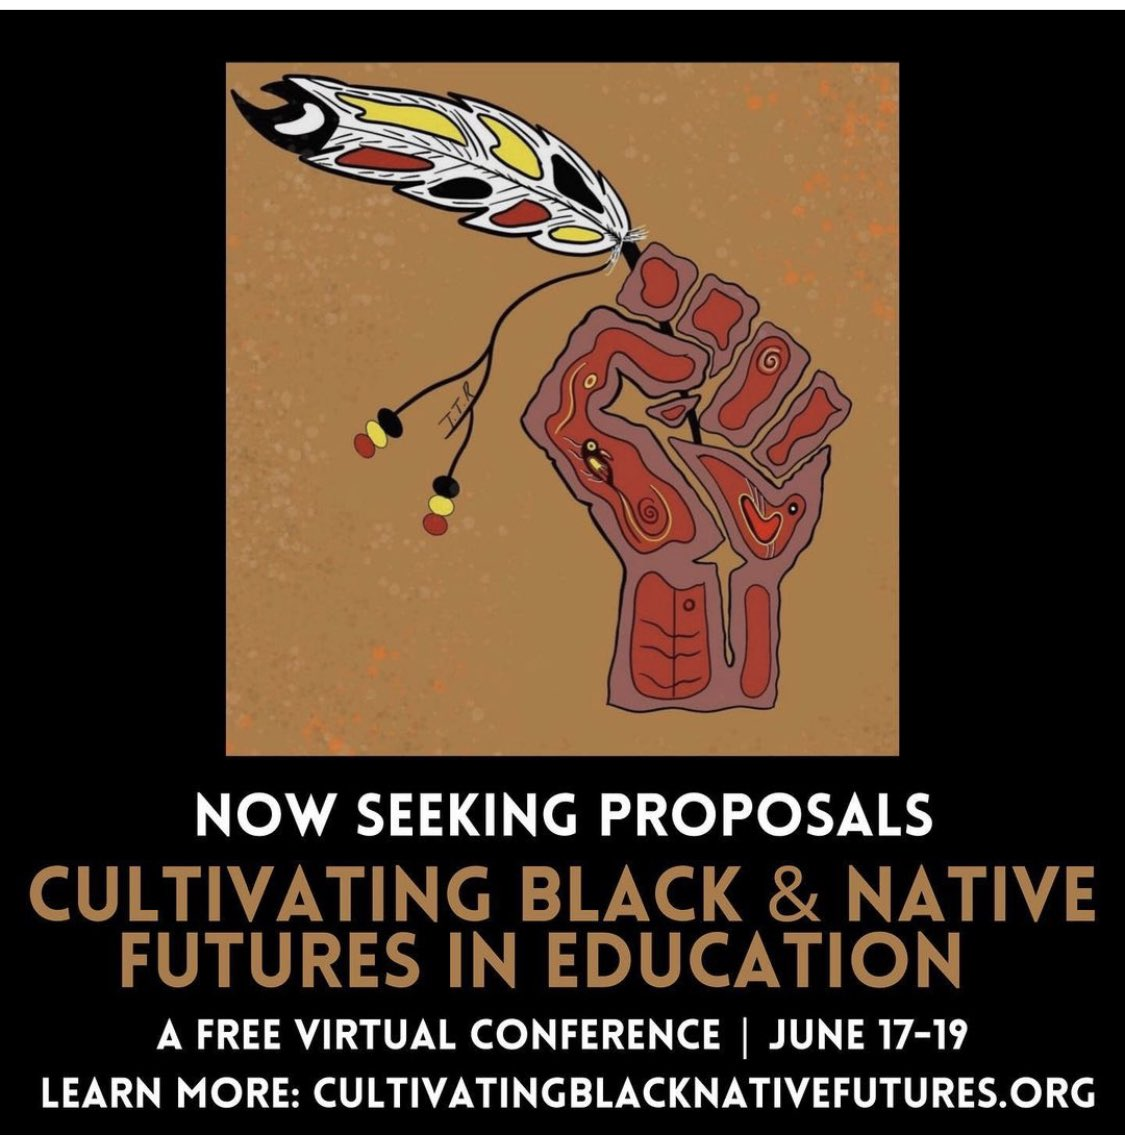 Proposals open for a free online conference focused on CULTIVATING BLACK & NATIVE FUTURES in EDUCATION. Acknowledging that this good work has been in motion, and will continue. Grateful to work w/the brilliant @eveewing on what we hope will be powerful & meaningful! Please share!